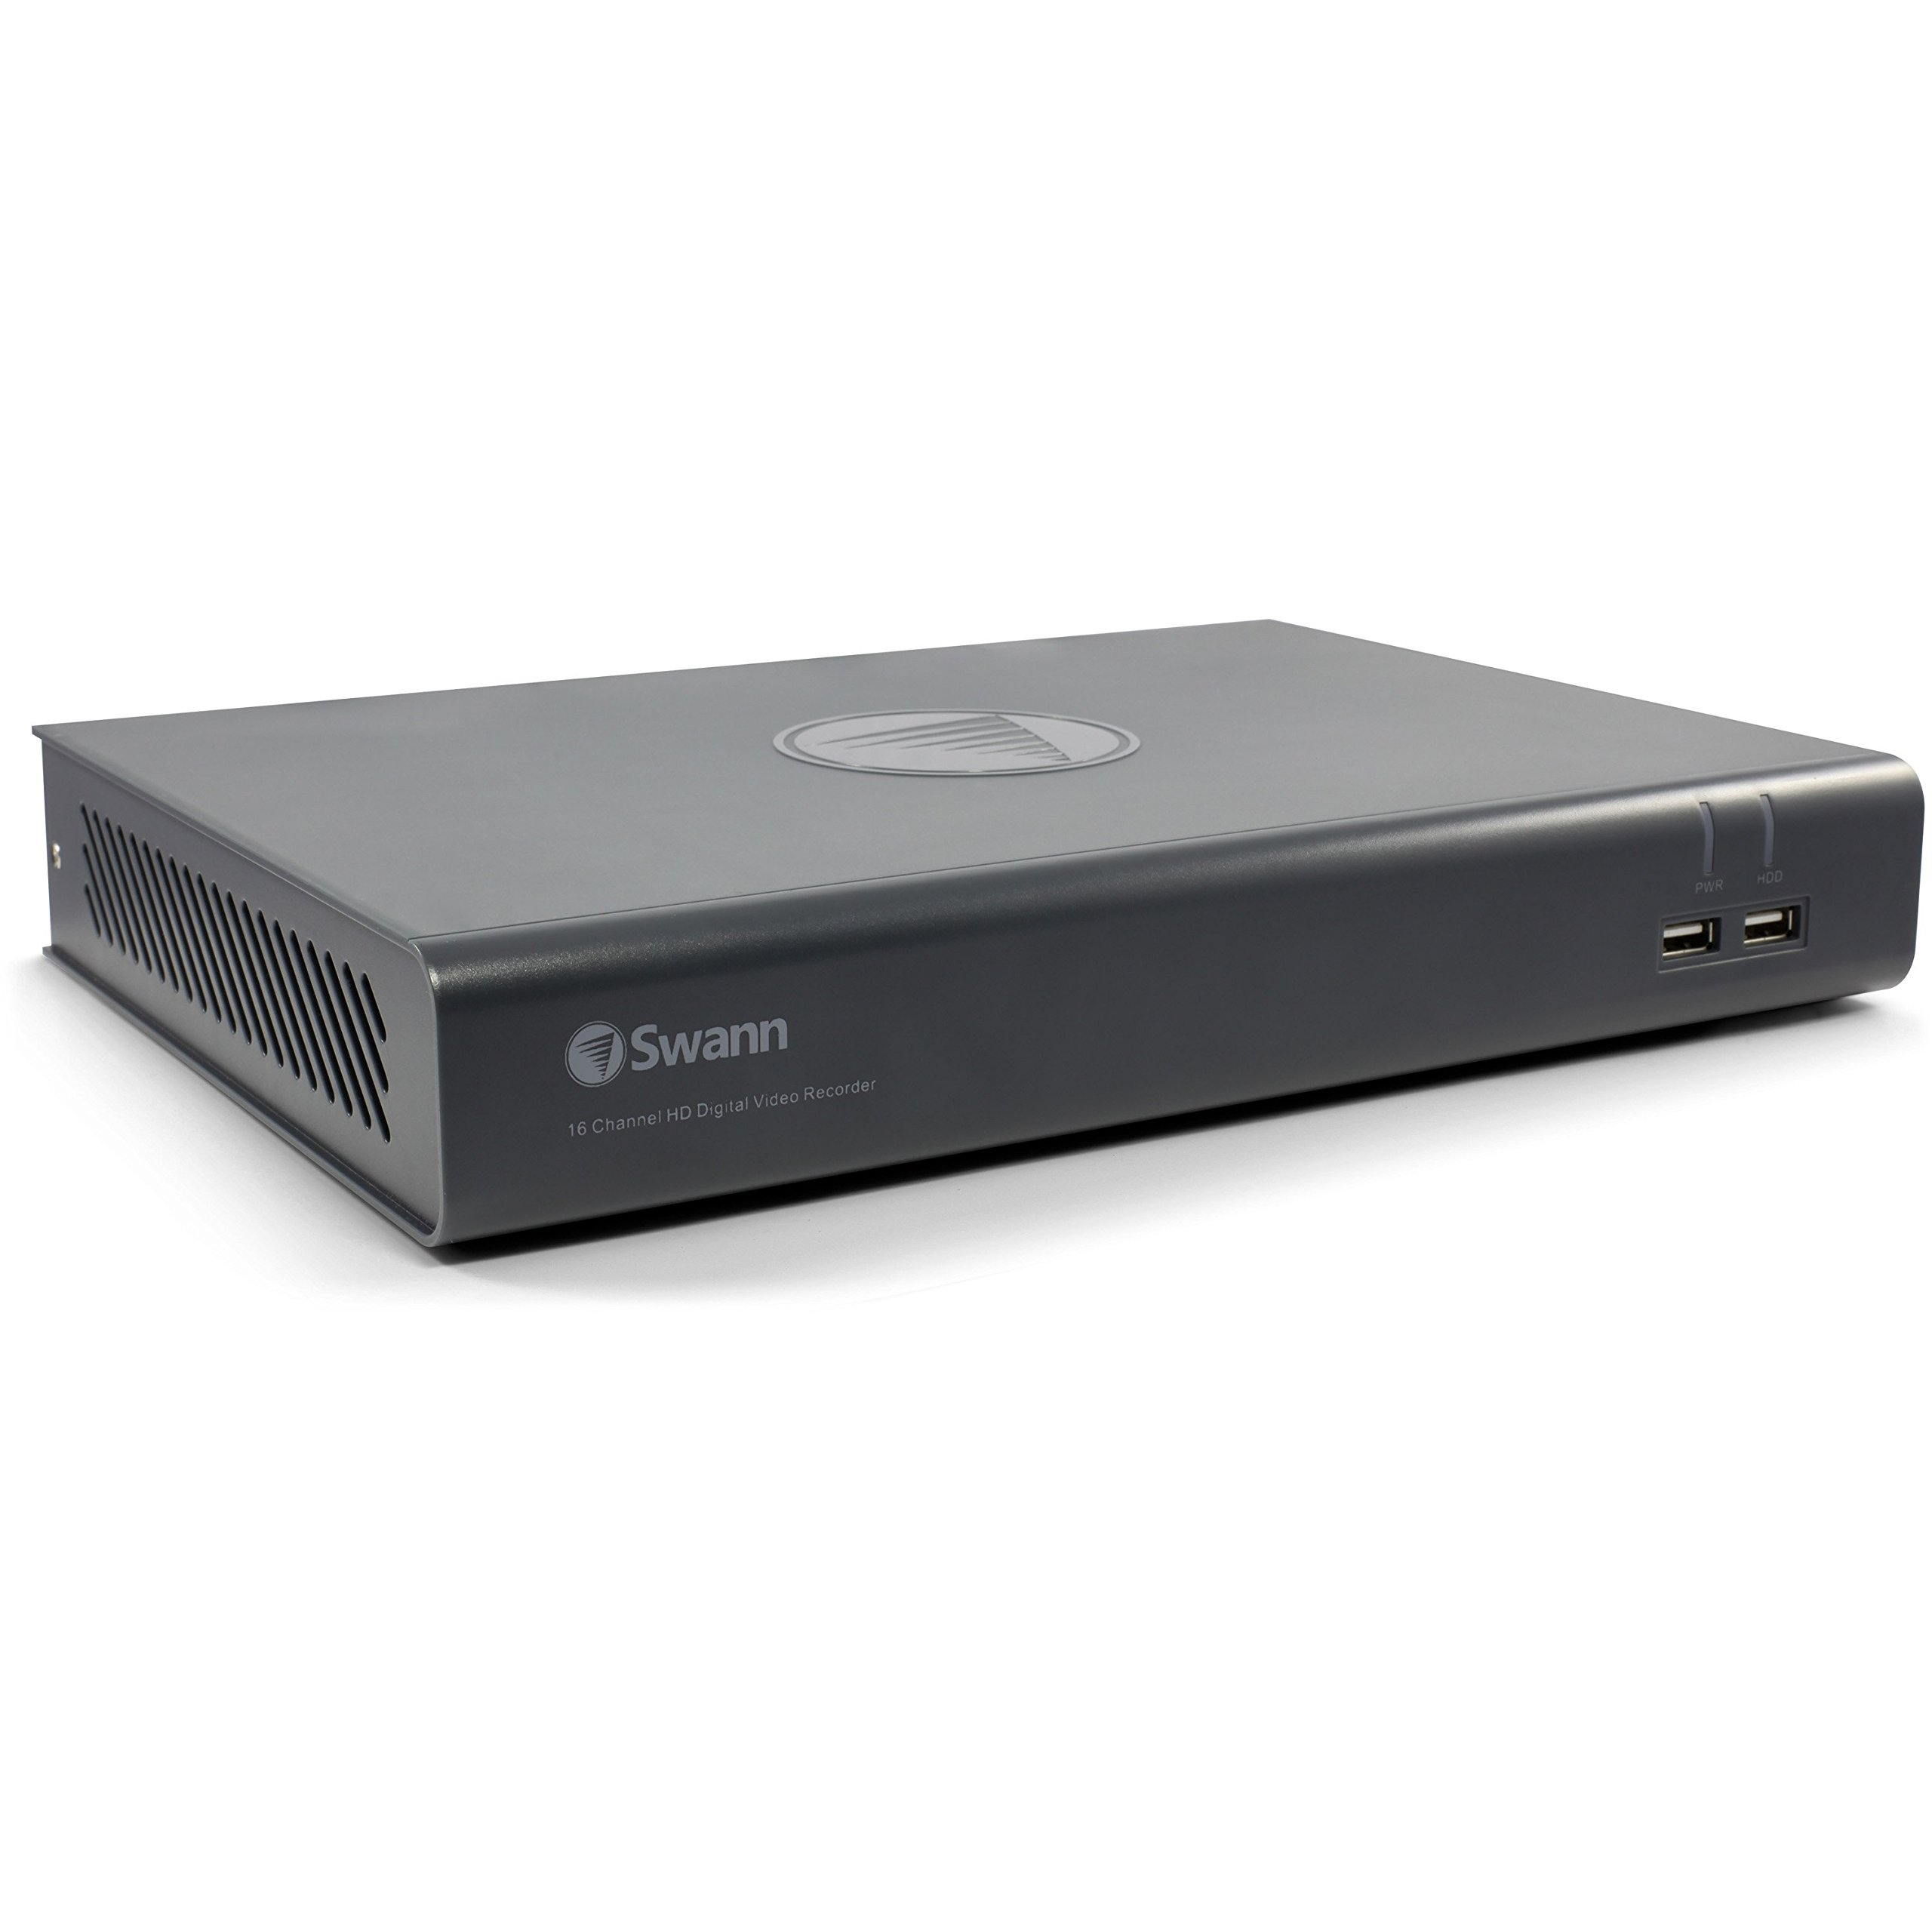 Swann 16 Channel Digital Video Recorder: 1080p Full HD with 2TB HDD - DVR-4575 (Plain Box Pack) by Swann